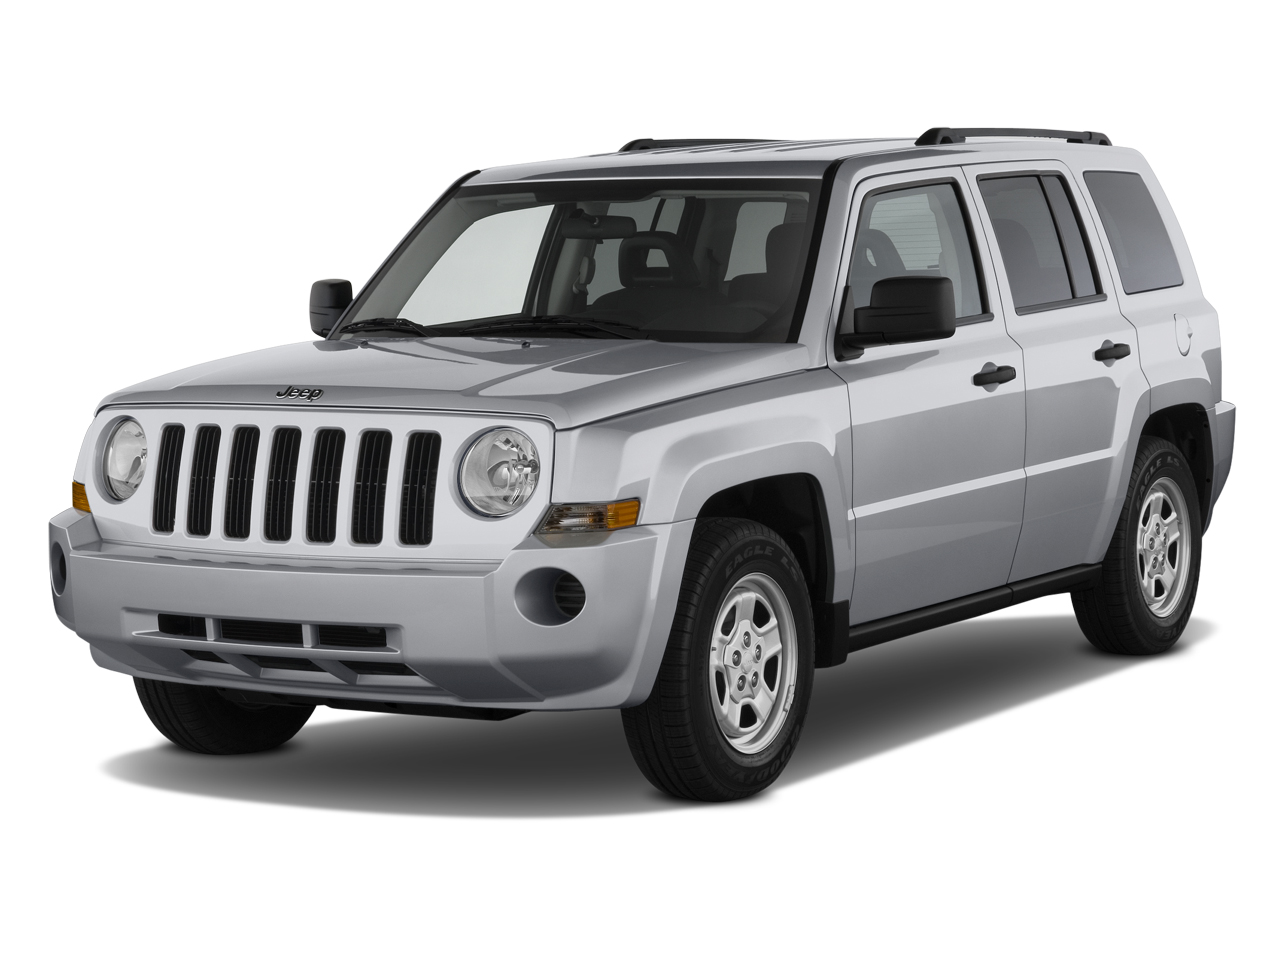 2010 jeep patriot fwd 4 door sport angular front exterior view 100237163 h - 2010 Jeep Patriot Limited 4x4